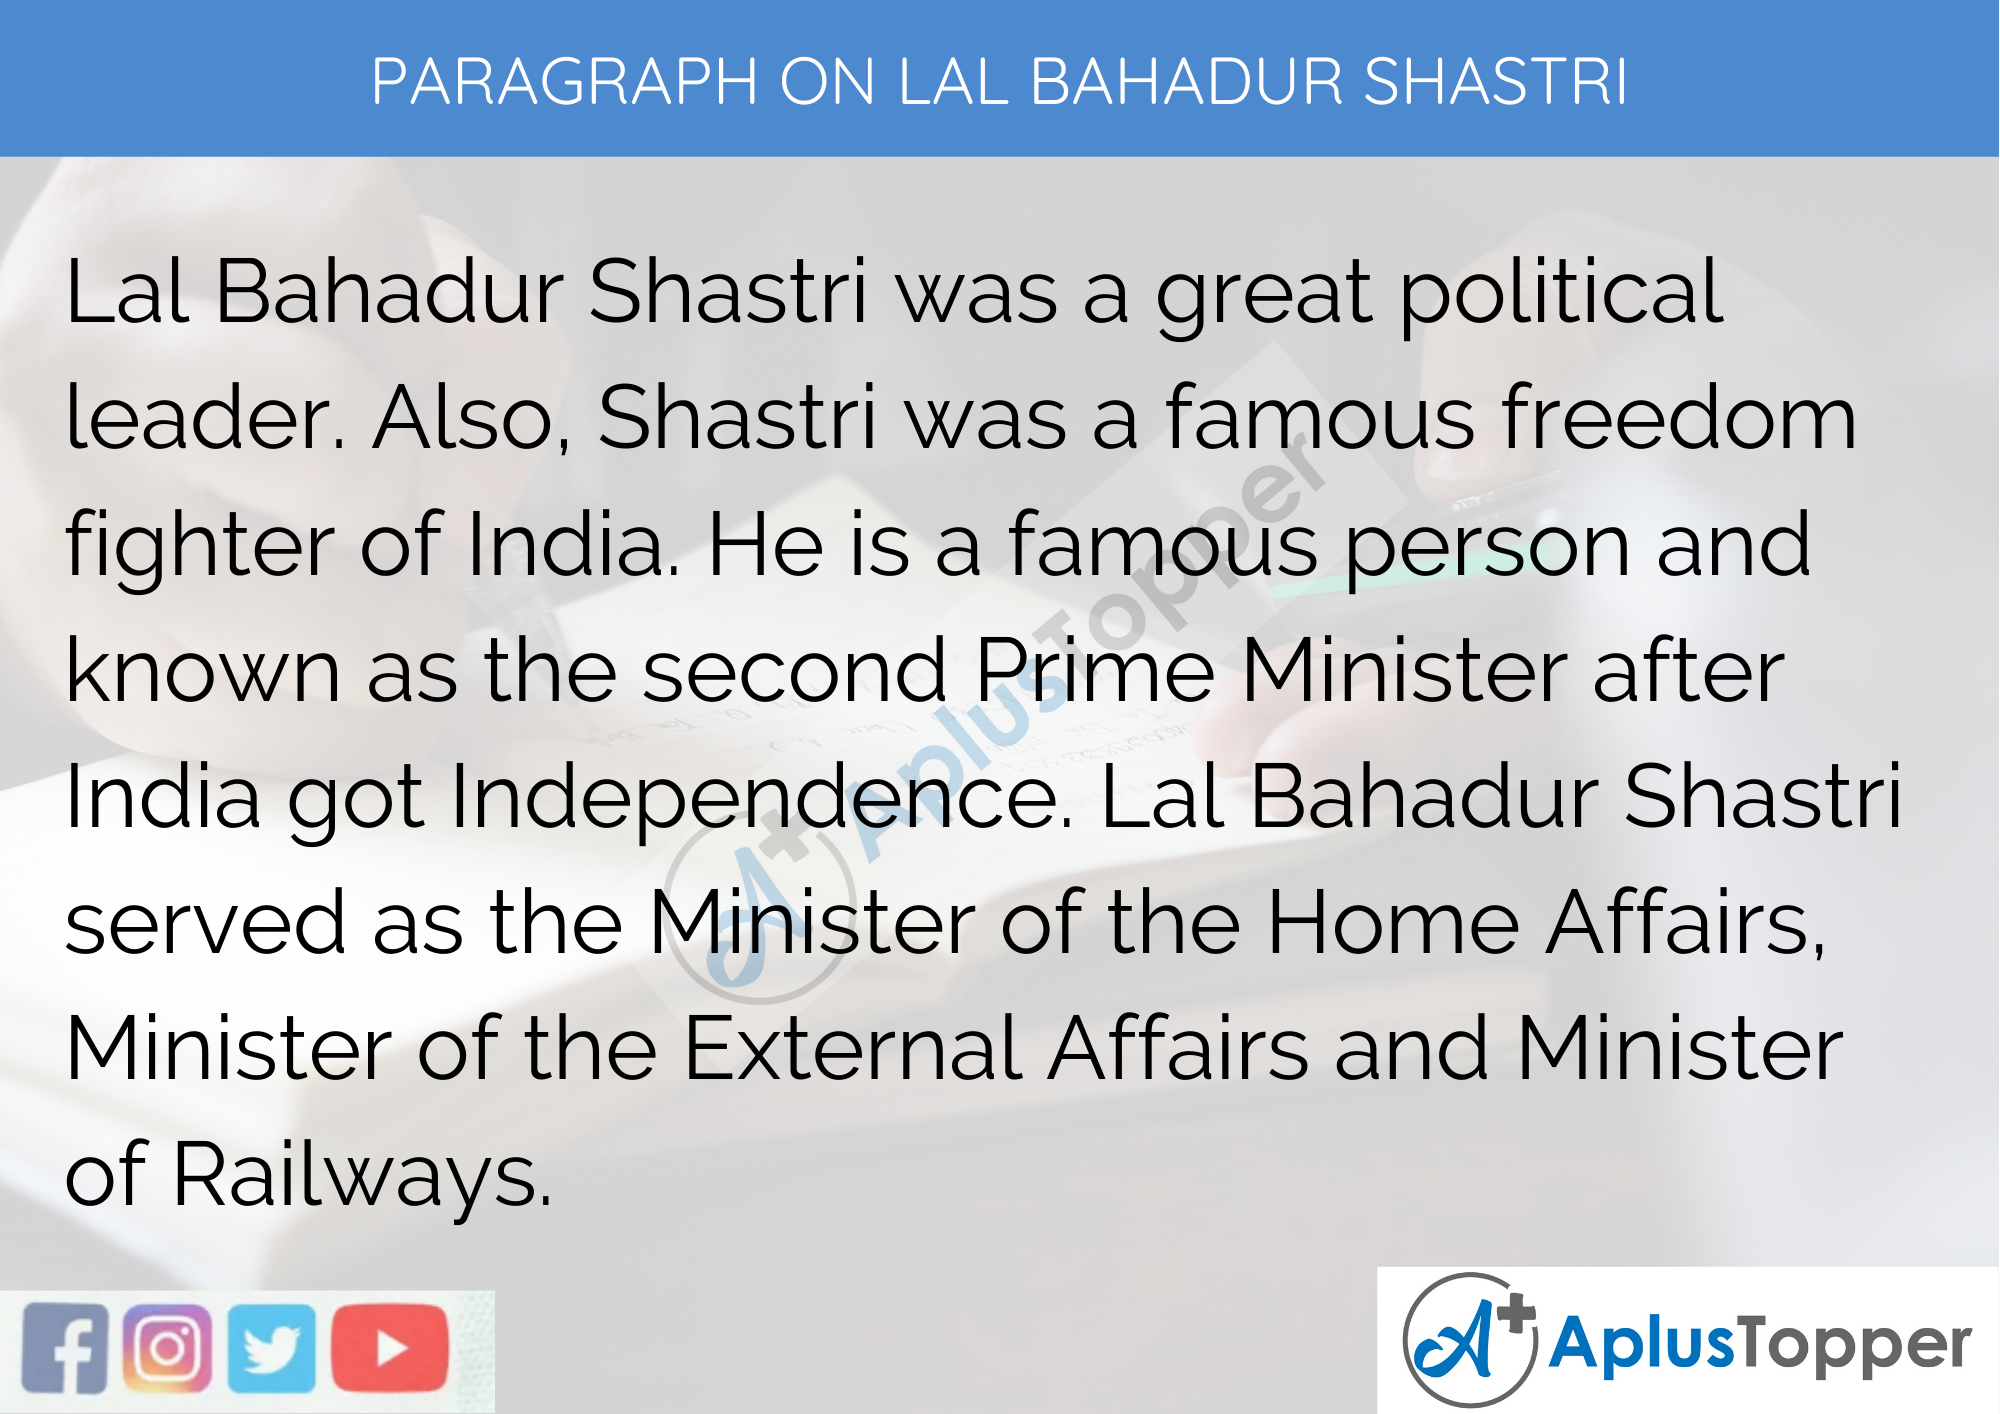 Paragraph On Lal Bahadur Shastri - 100 Words for Classes 1, 2, 3 Kids